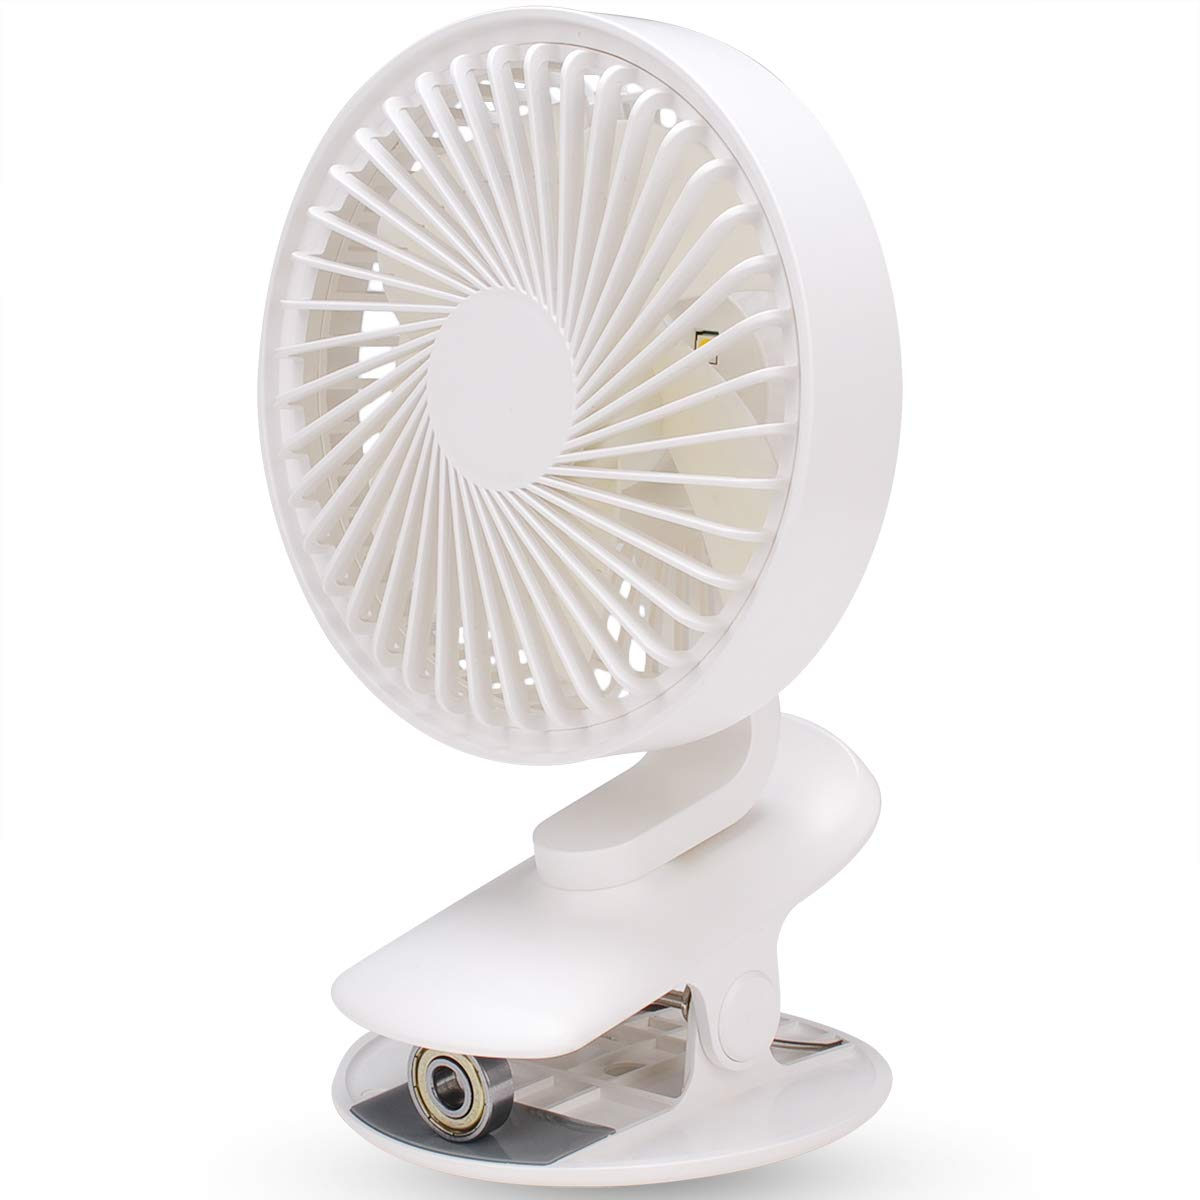 Clip on Fan with Night Light, LBTbate Personal Mini Desk Table Fan, Rechargeable Battery Operated or USB Powered, 360° Rotating, Portable Fan for Baby Stroller Home Office Camping Outdoor by LBTbate